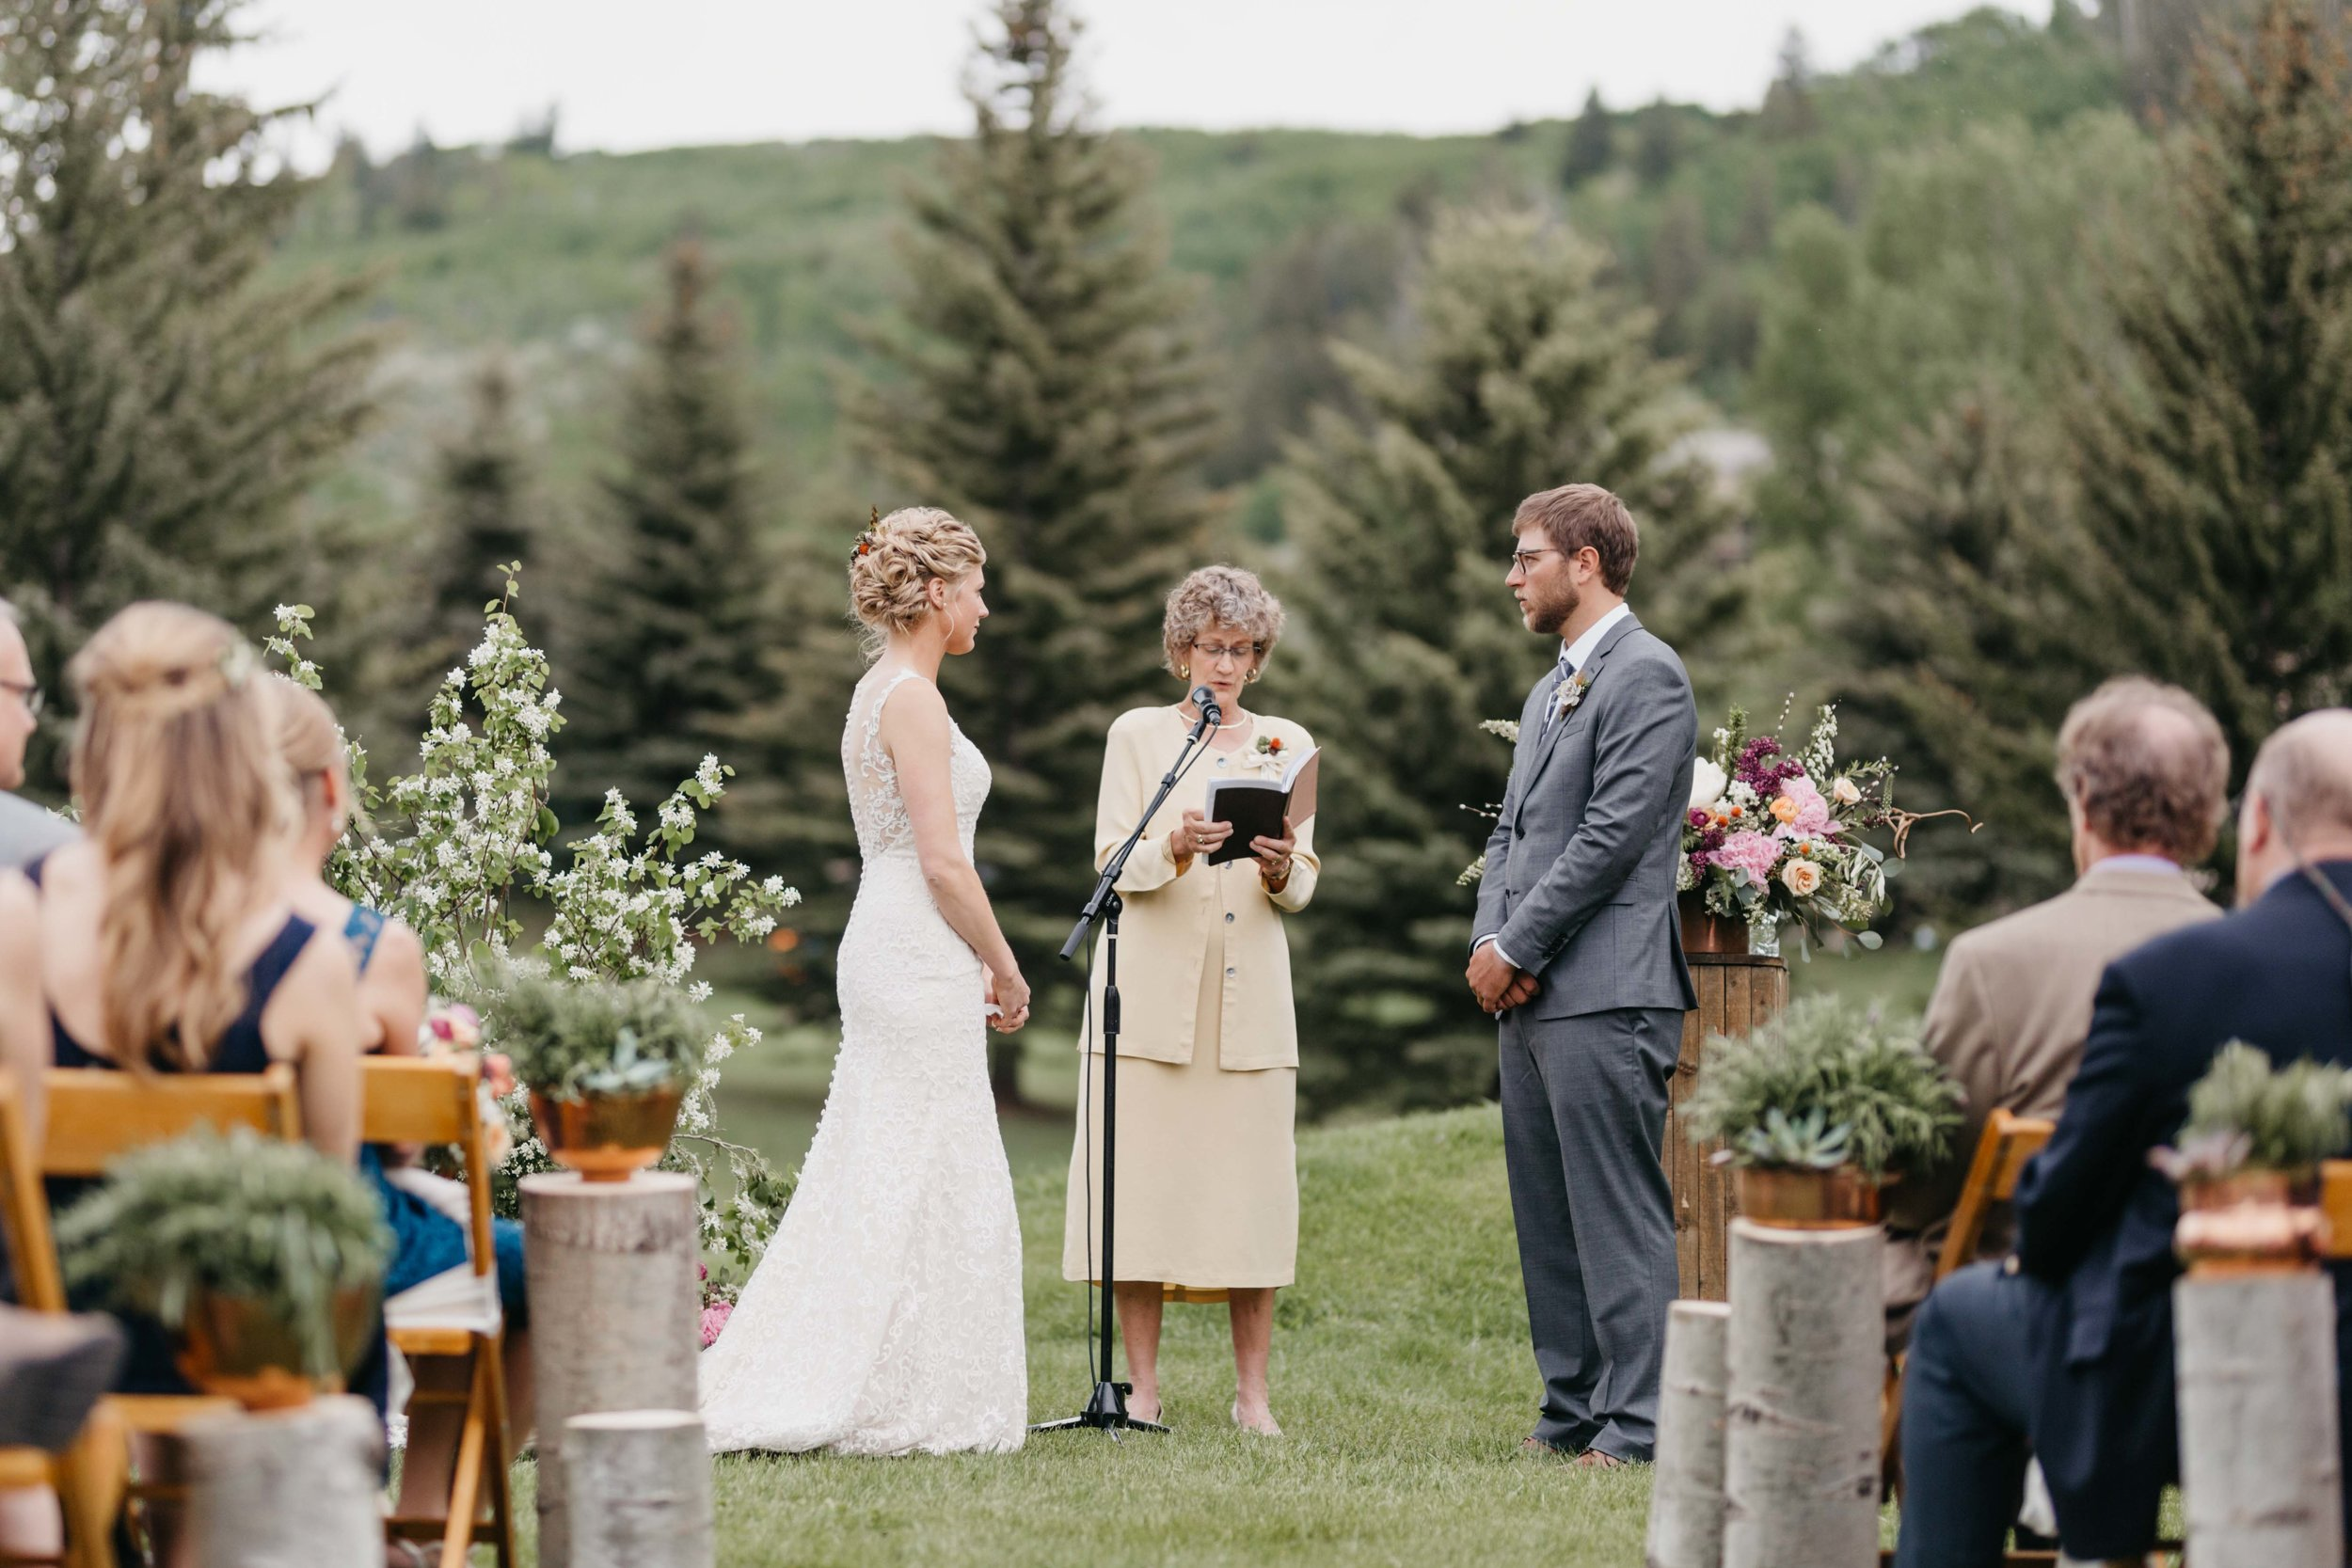 Colorado-Wedding-Photographer-60.jpg